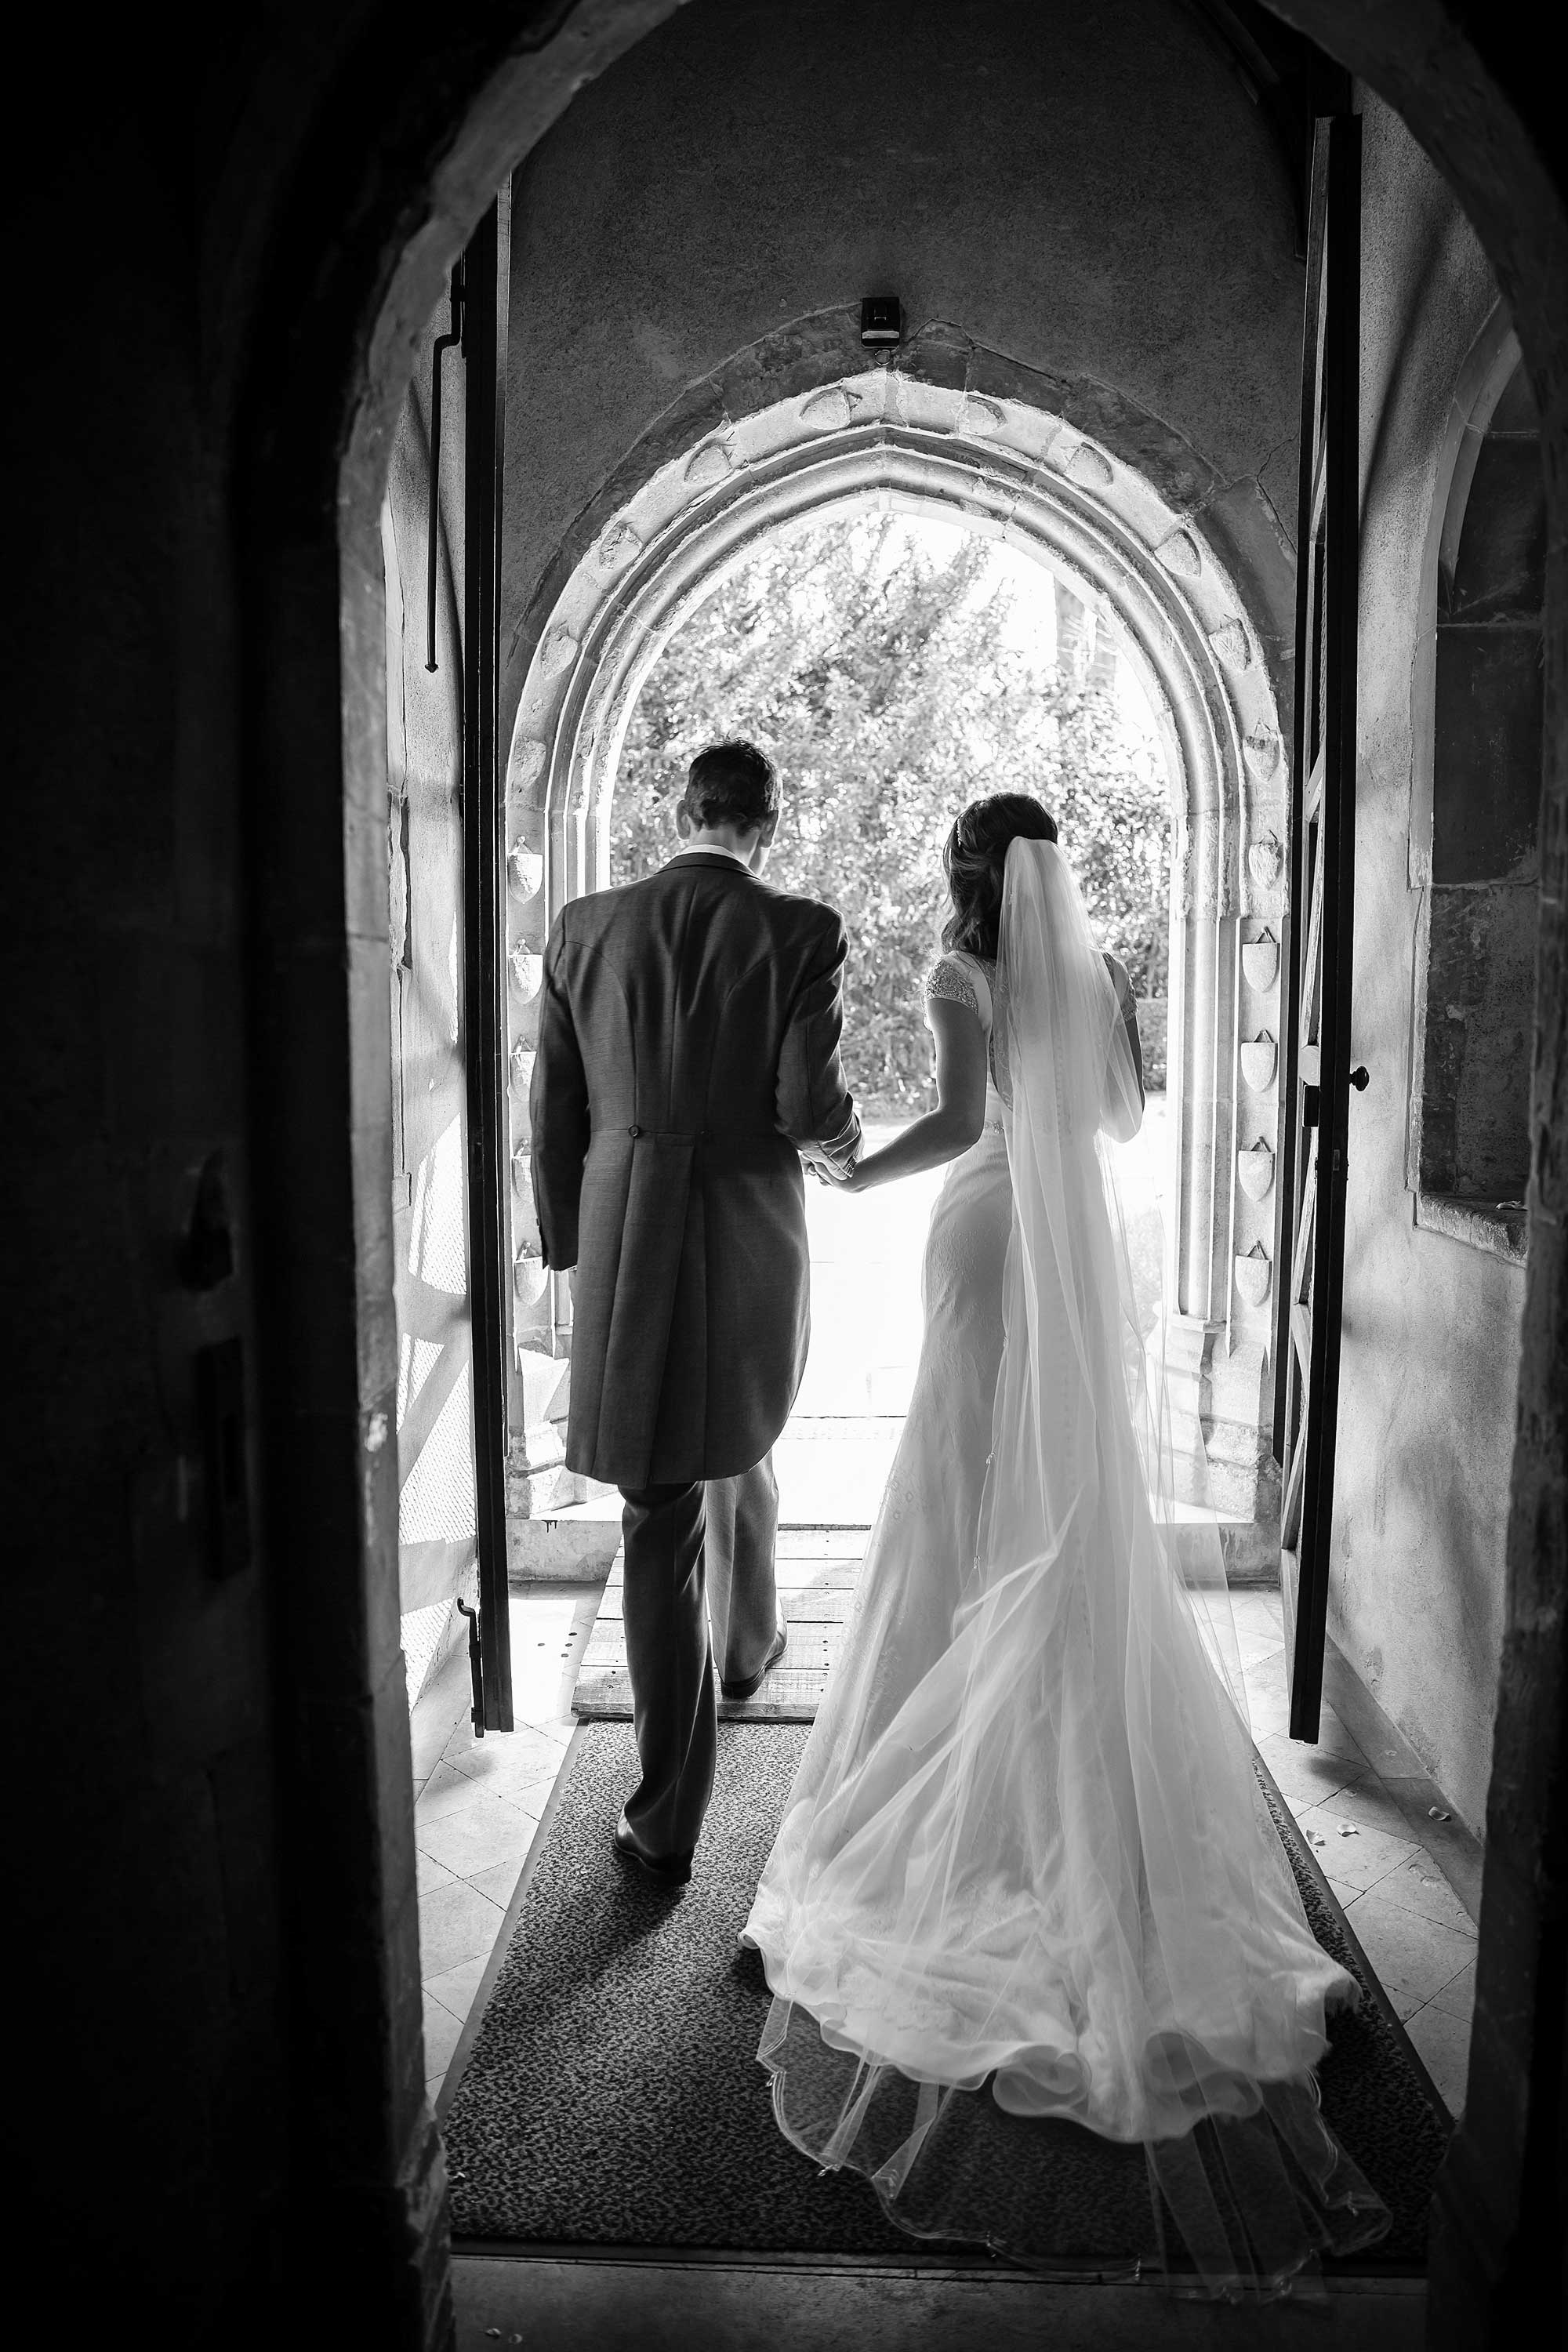 Black and white image of the couple exiting the church taken from behind them, so you can see the back of the brides dress.